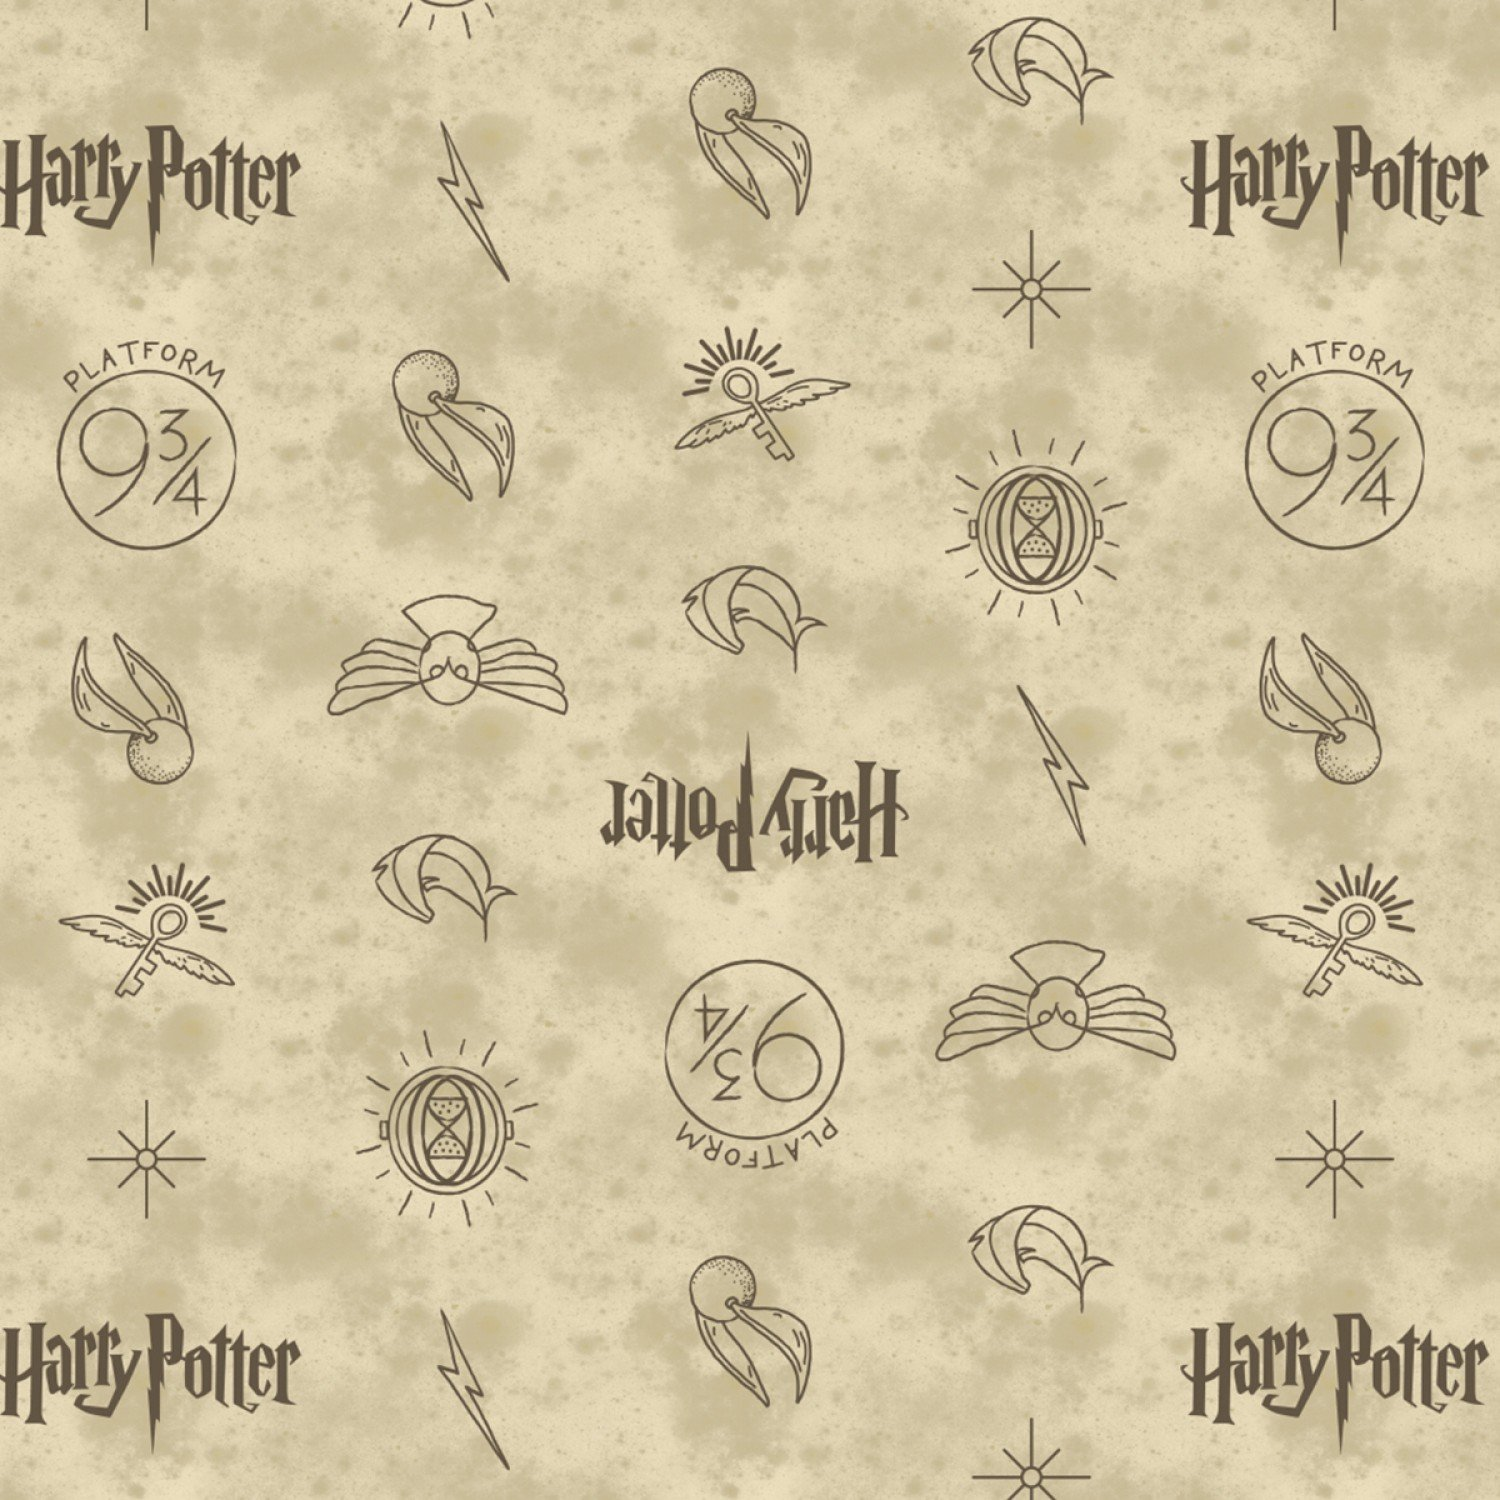 Cf Harry Potter 23800137 01 Hp Symbols In Dark Cream